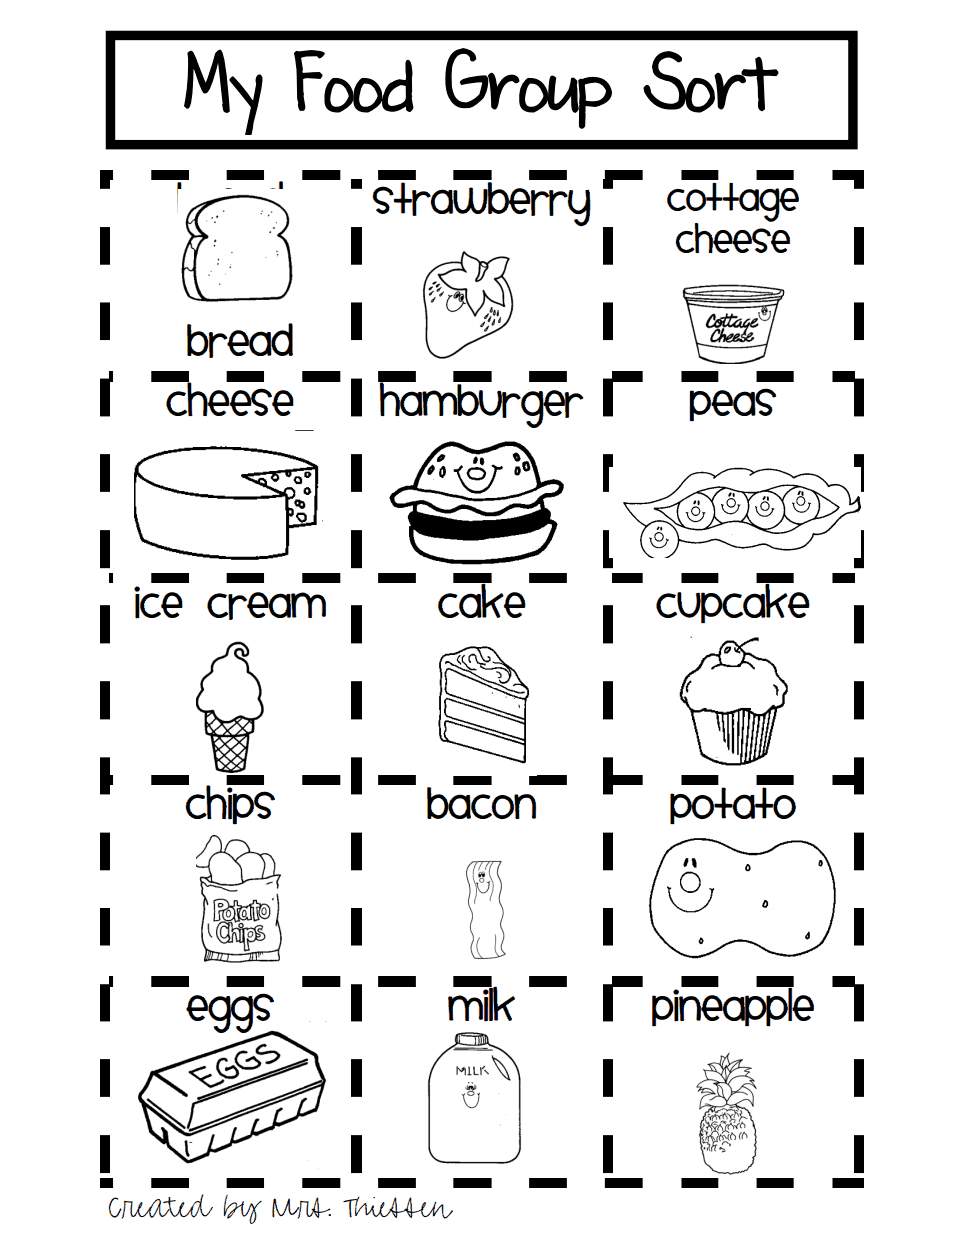 My First Grade Food Sort.pdf - Google Drive   Preschool food [ 1248 x 964 Pixel ]